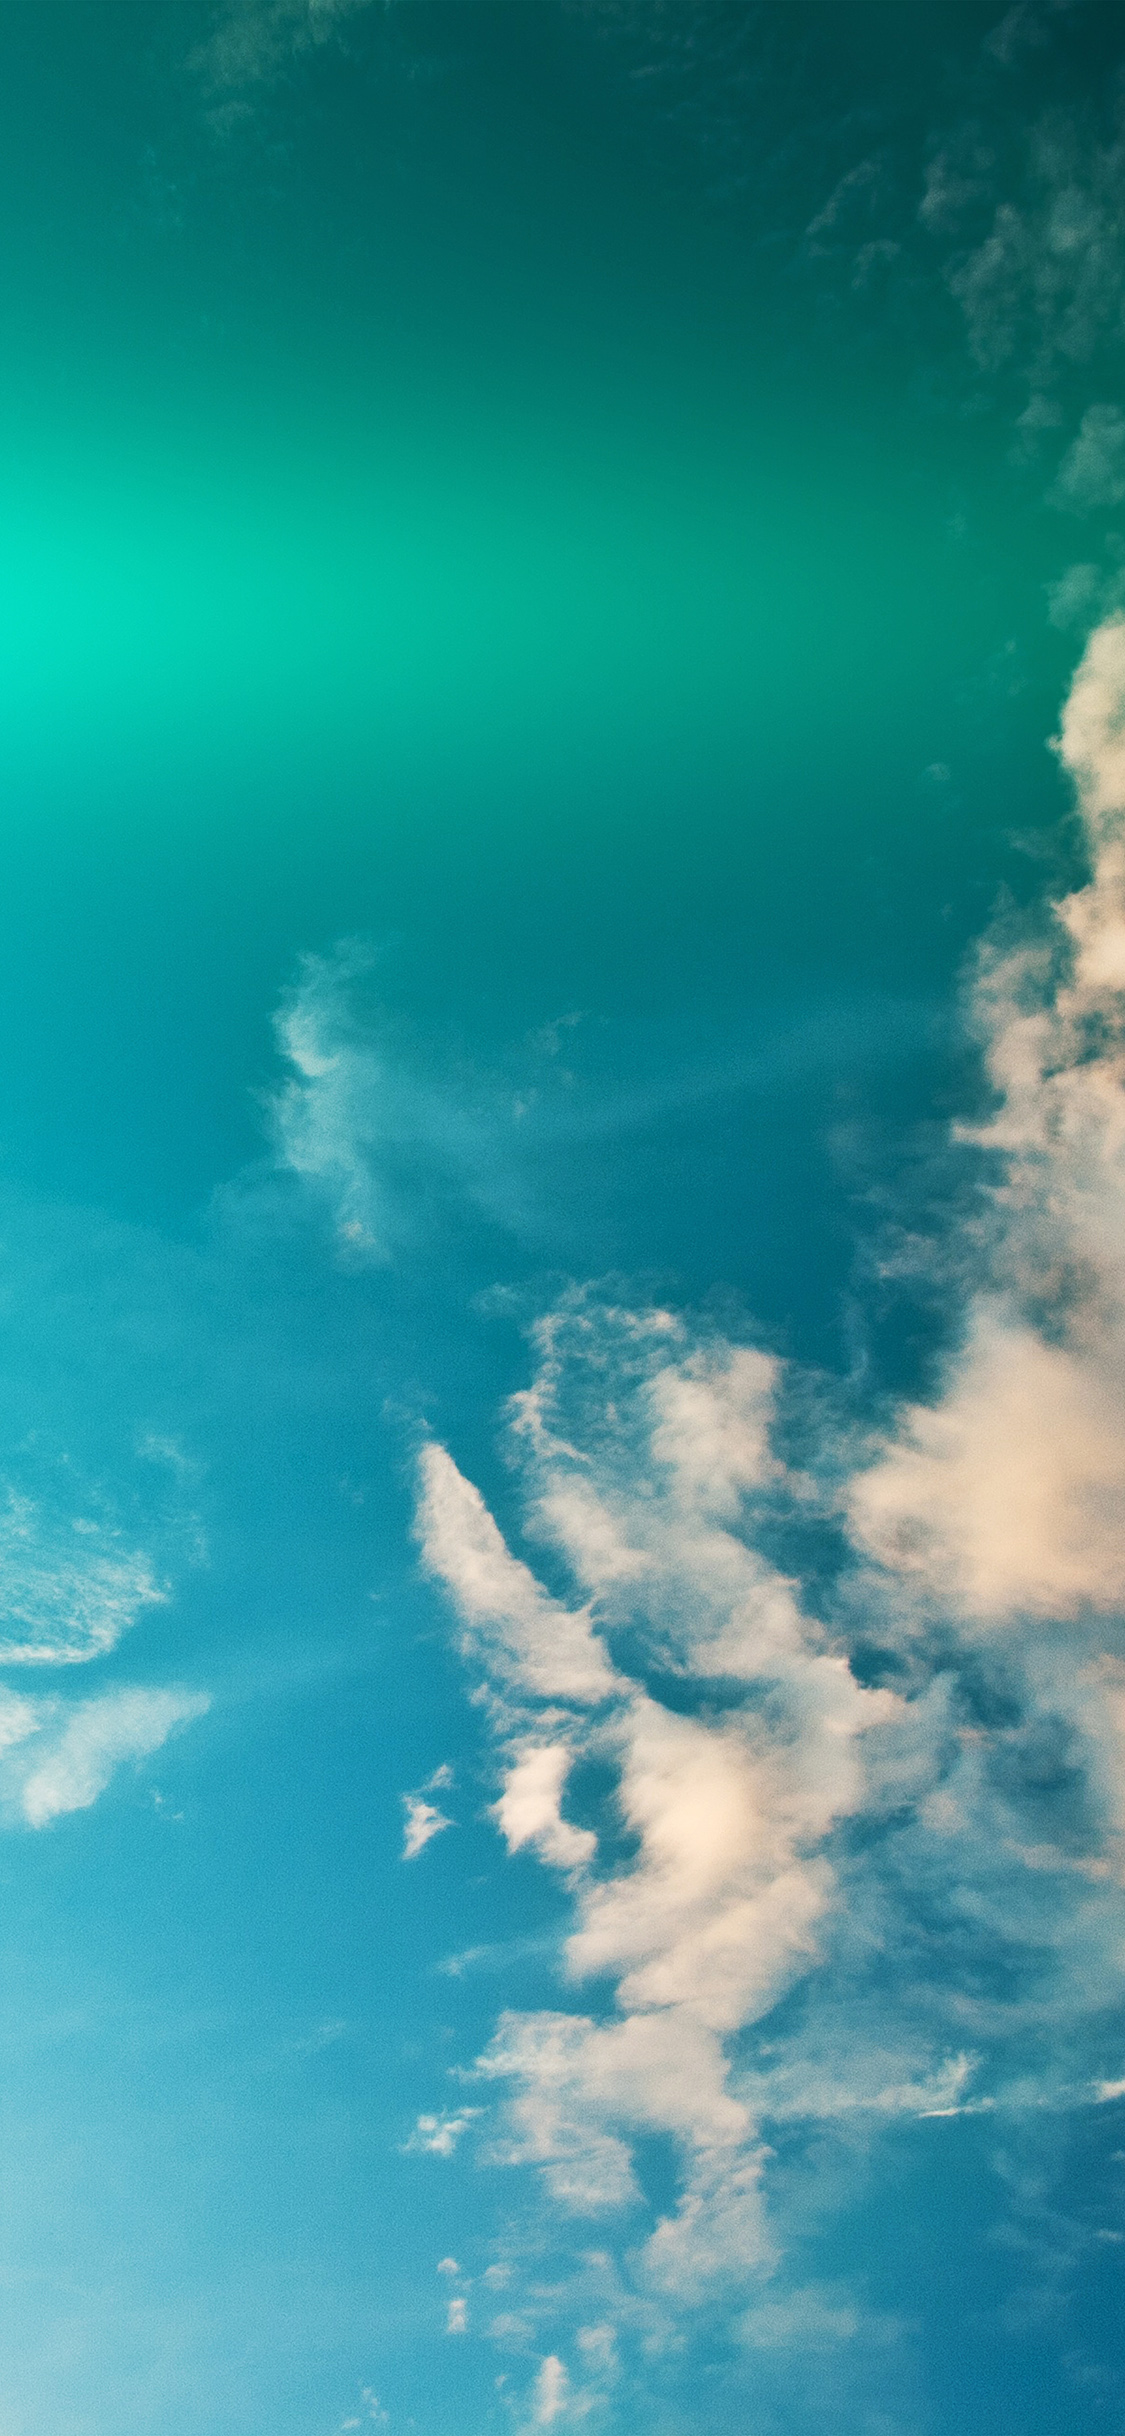 iPhonexpapers.com-Apple-iPhone-wallpaper-mw90-sky-blue-green-cloud-sunny-clear-nature-flare